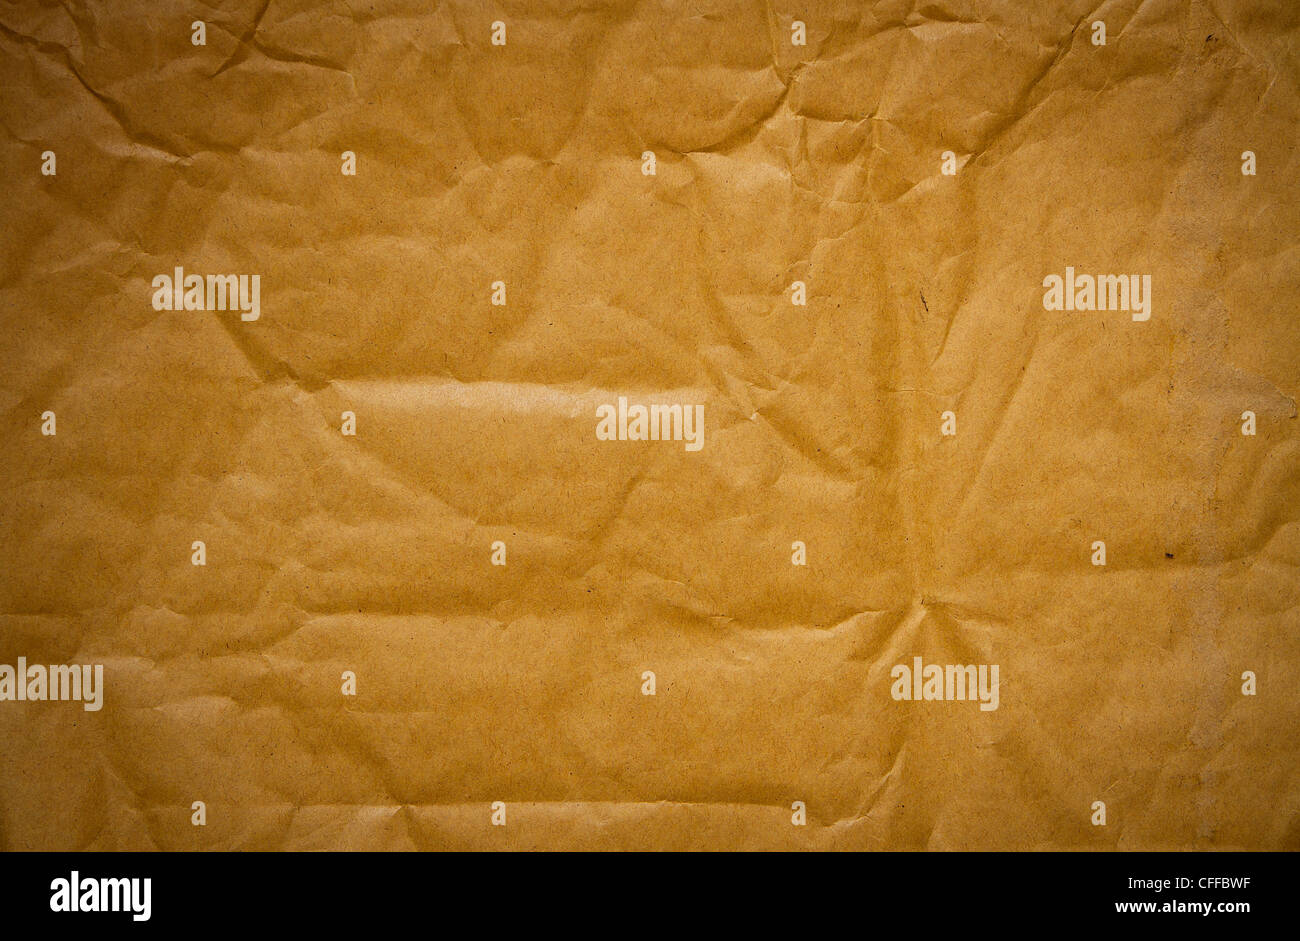 the old brown paper background texture - Stock Image